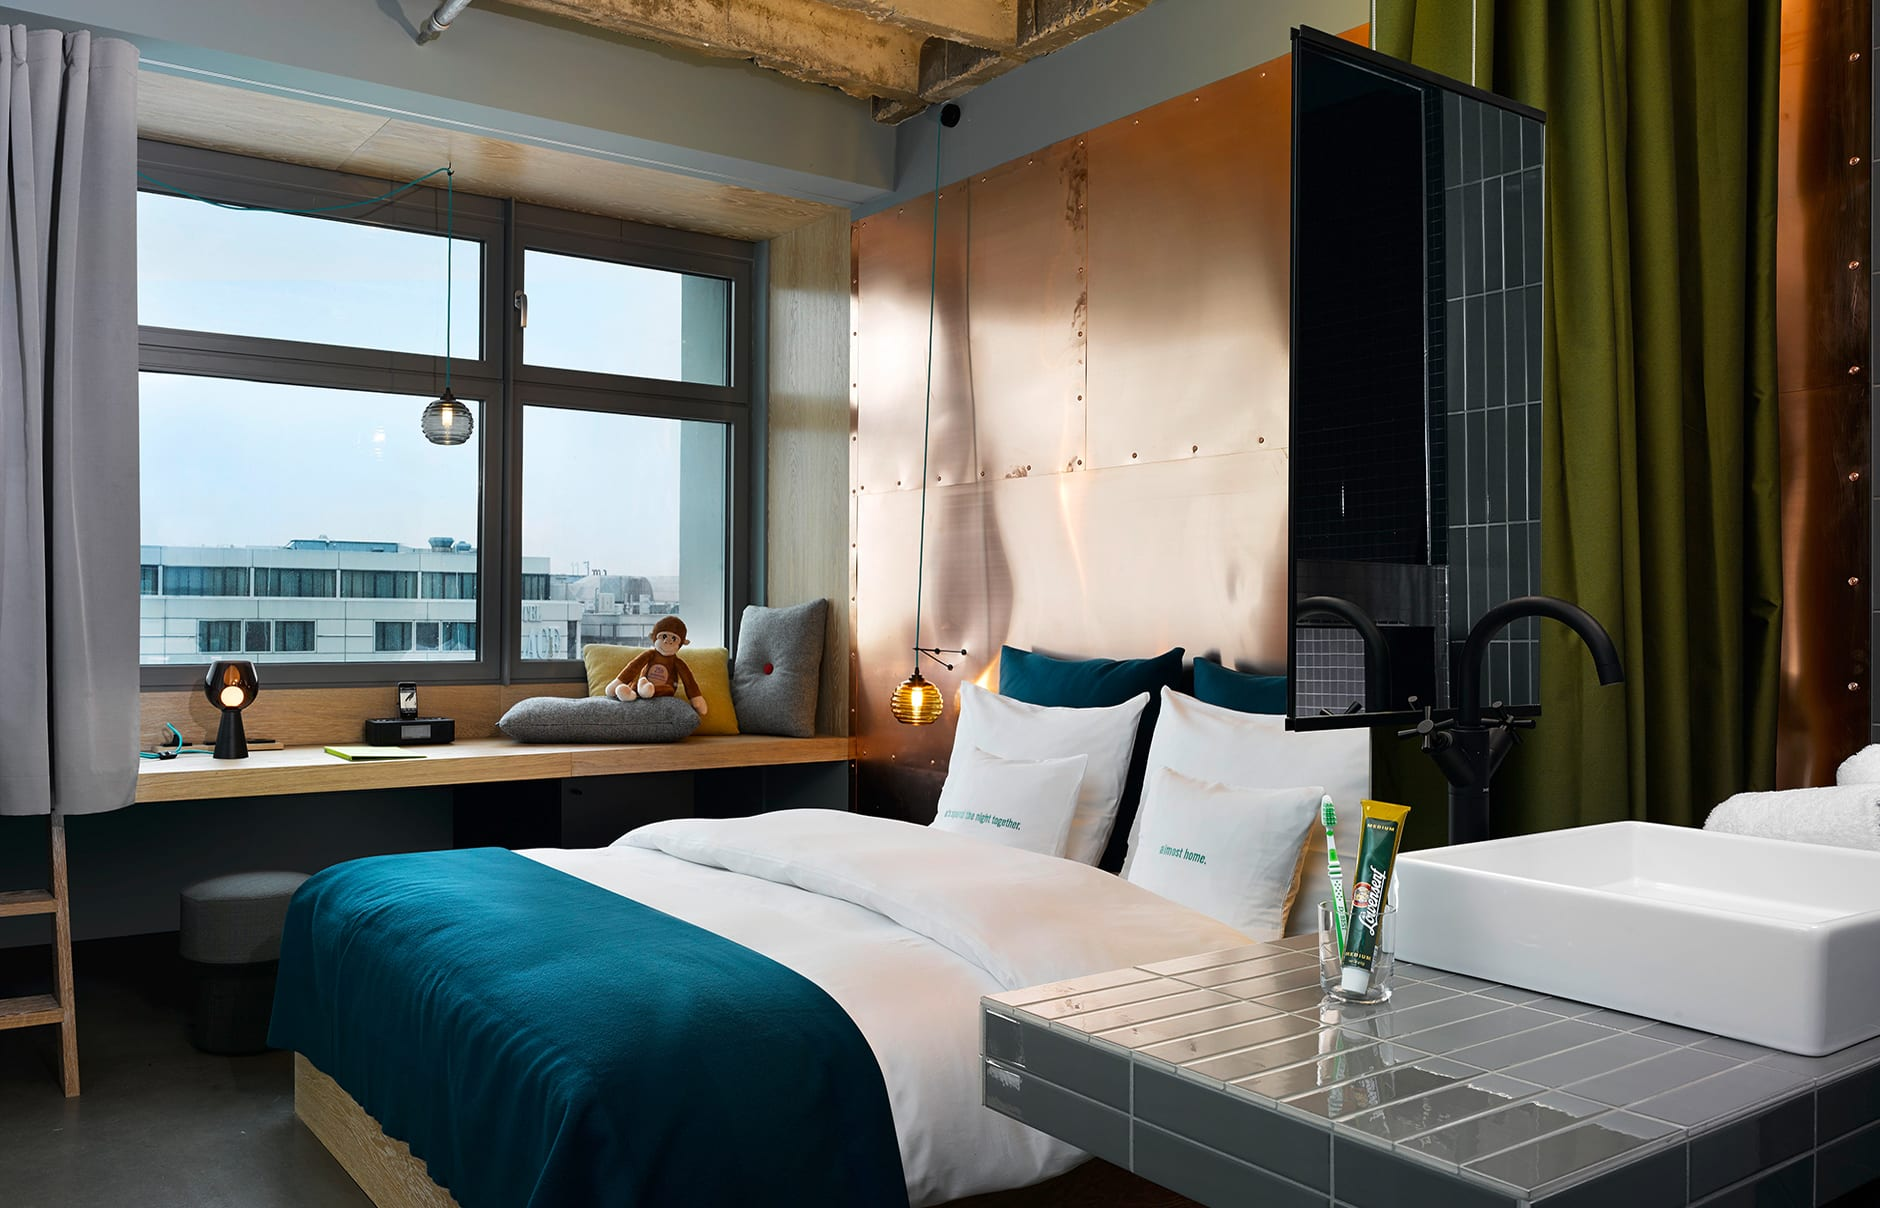 25hours Hotel Bikini Berlin, Germany. © 25hours Hotels / Stephan Lemke